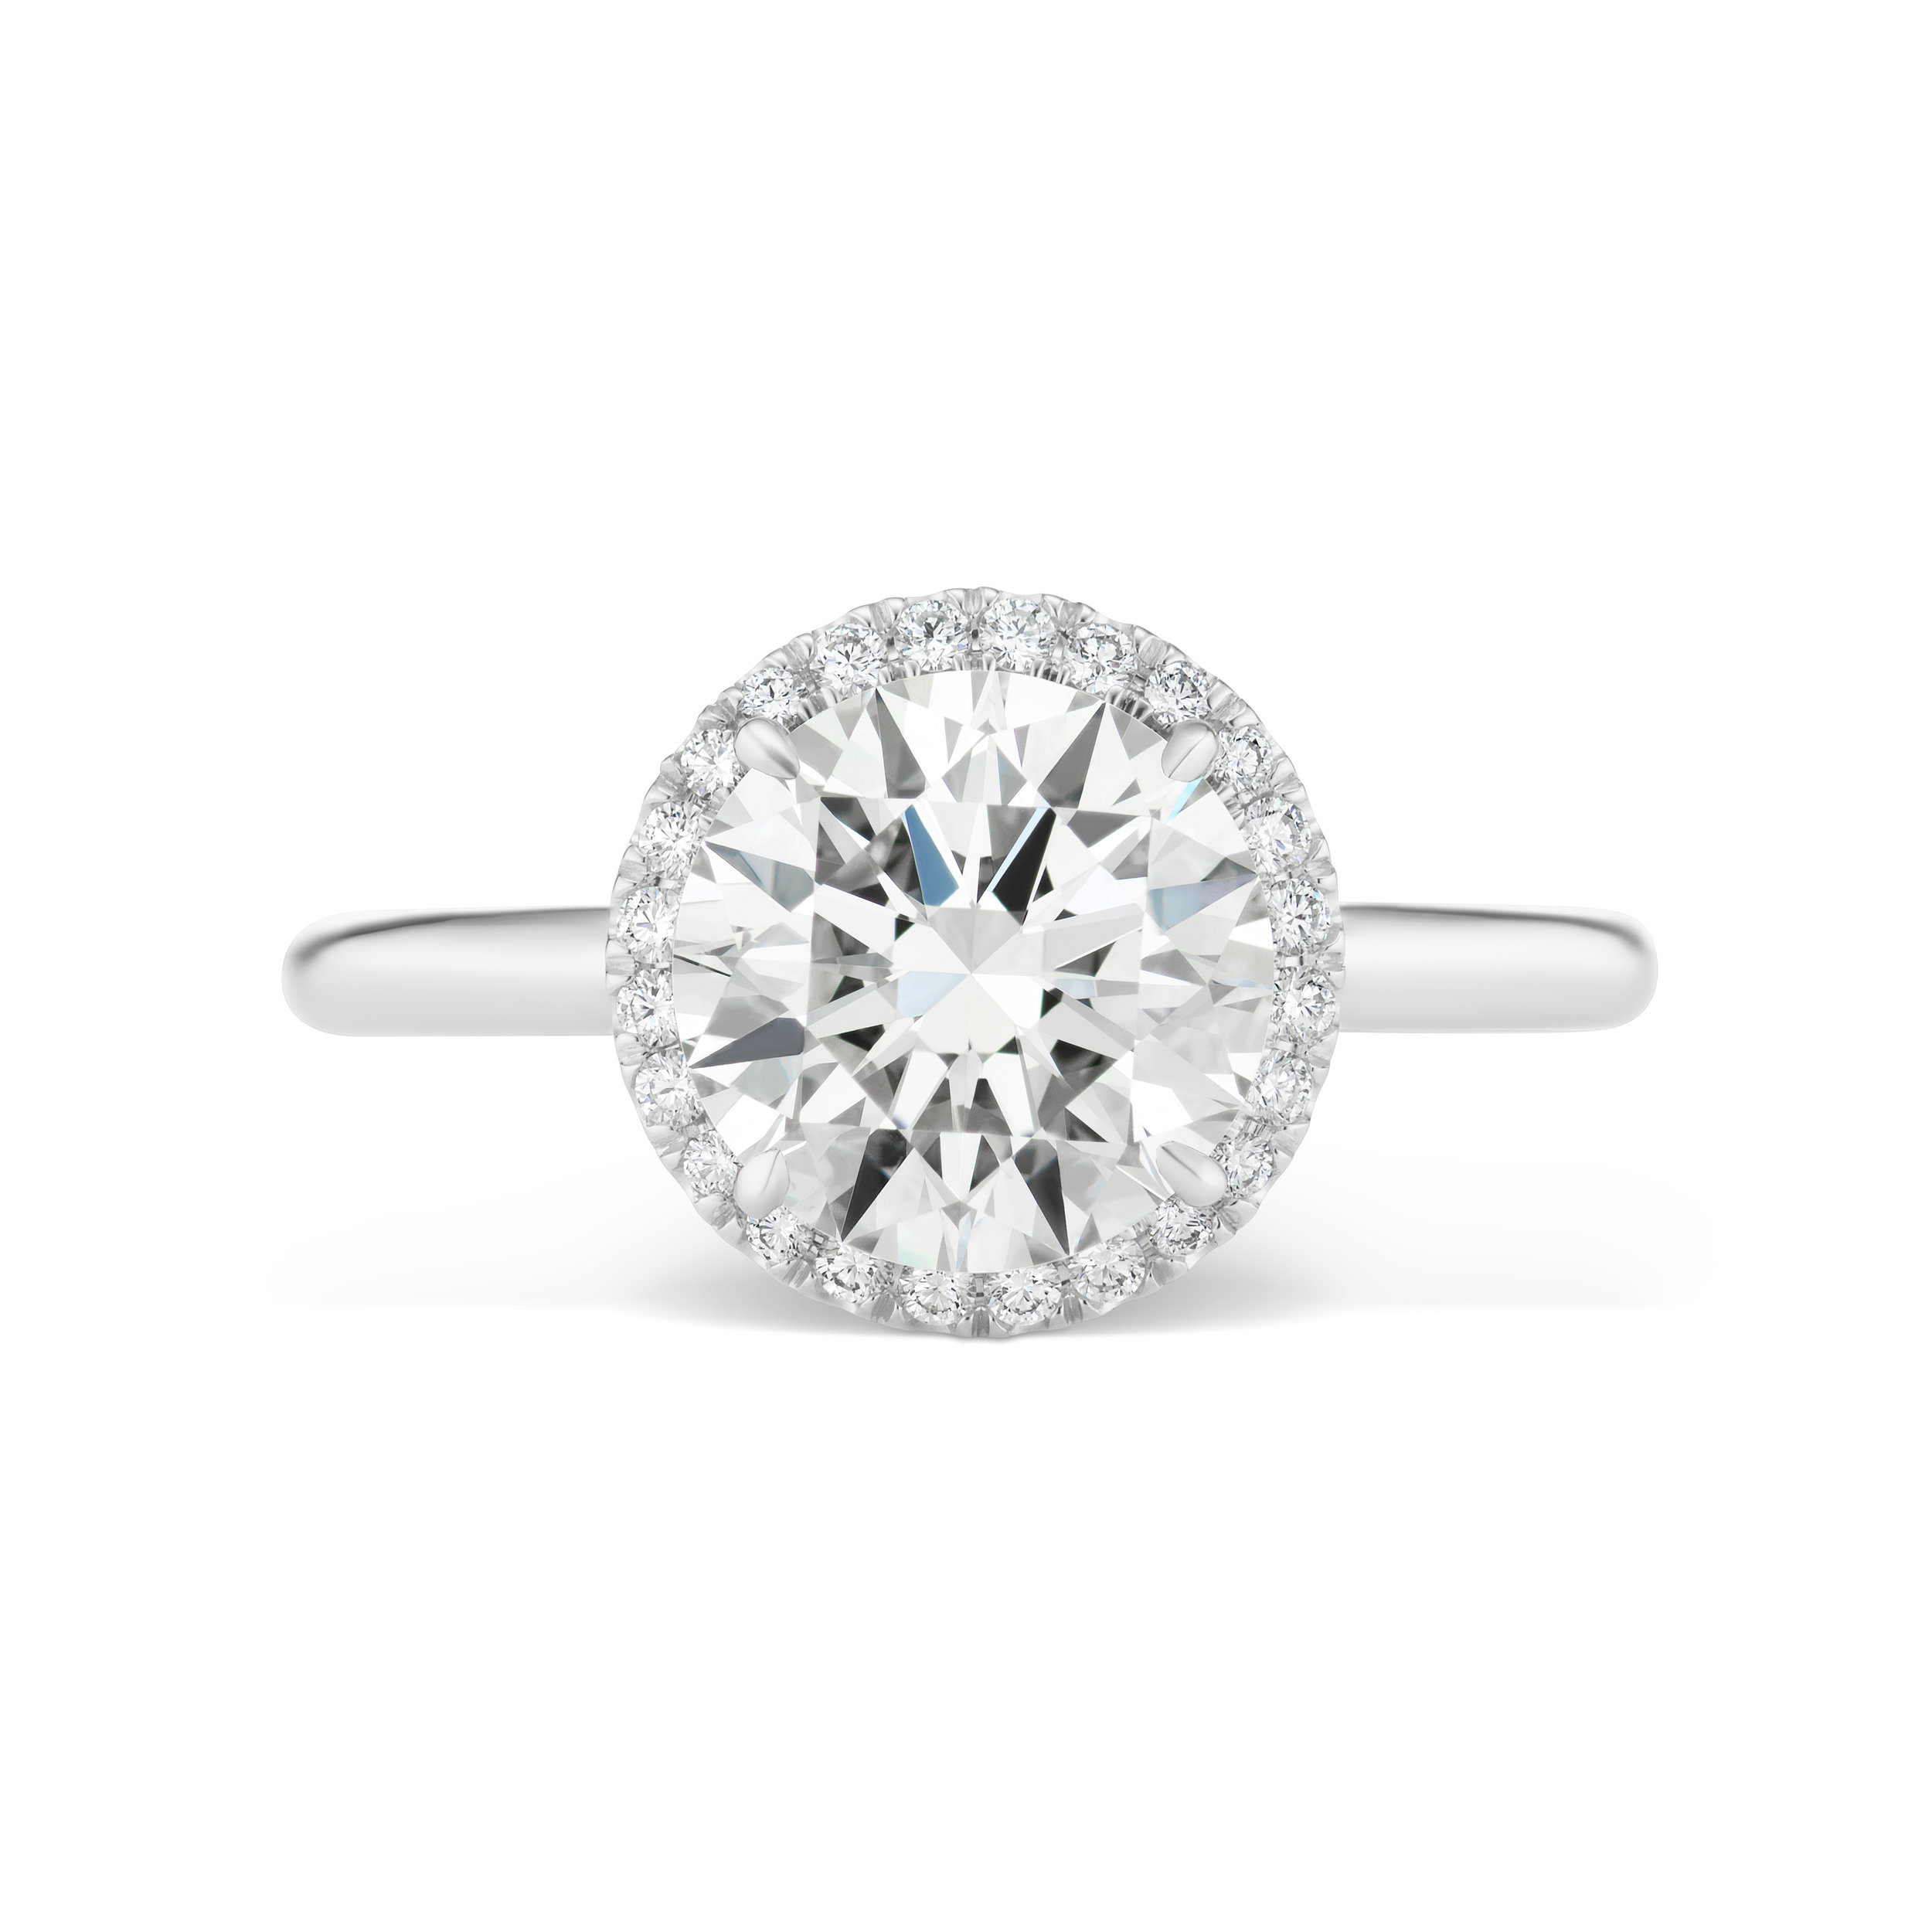 Round brilliant diamond ring with micropavé trim, mounted in platinum.jpg